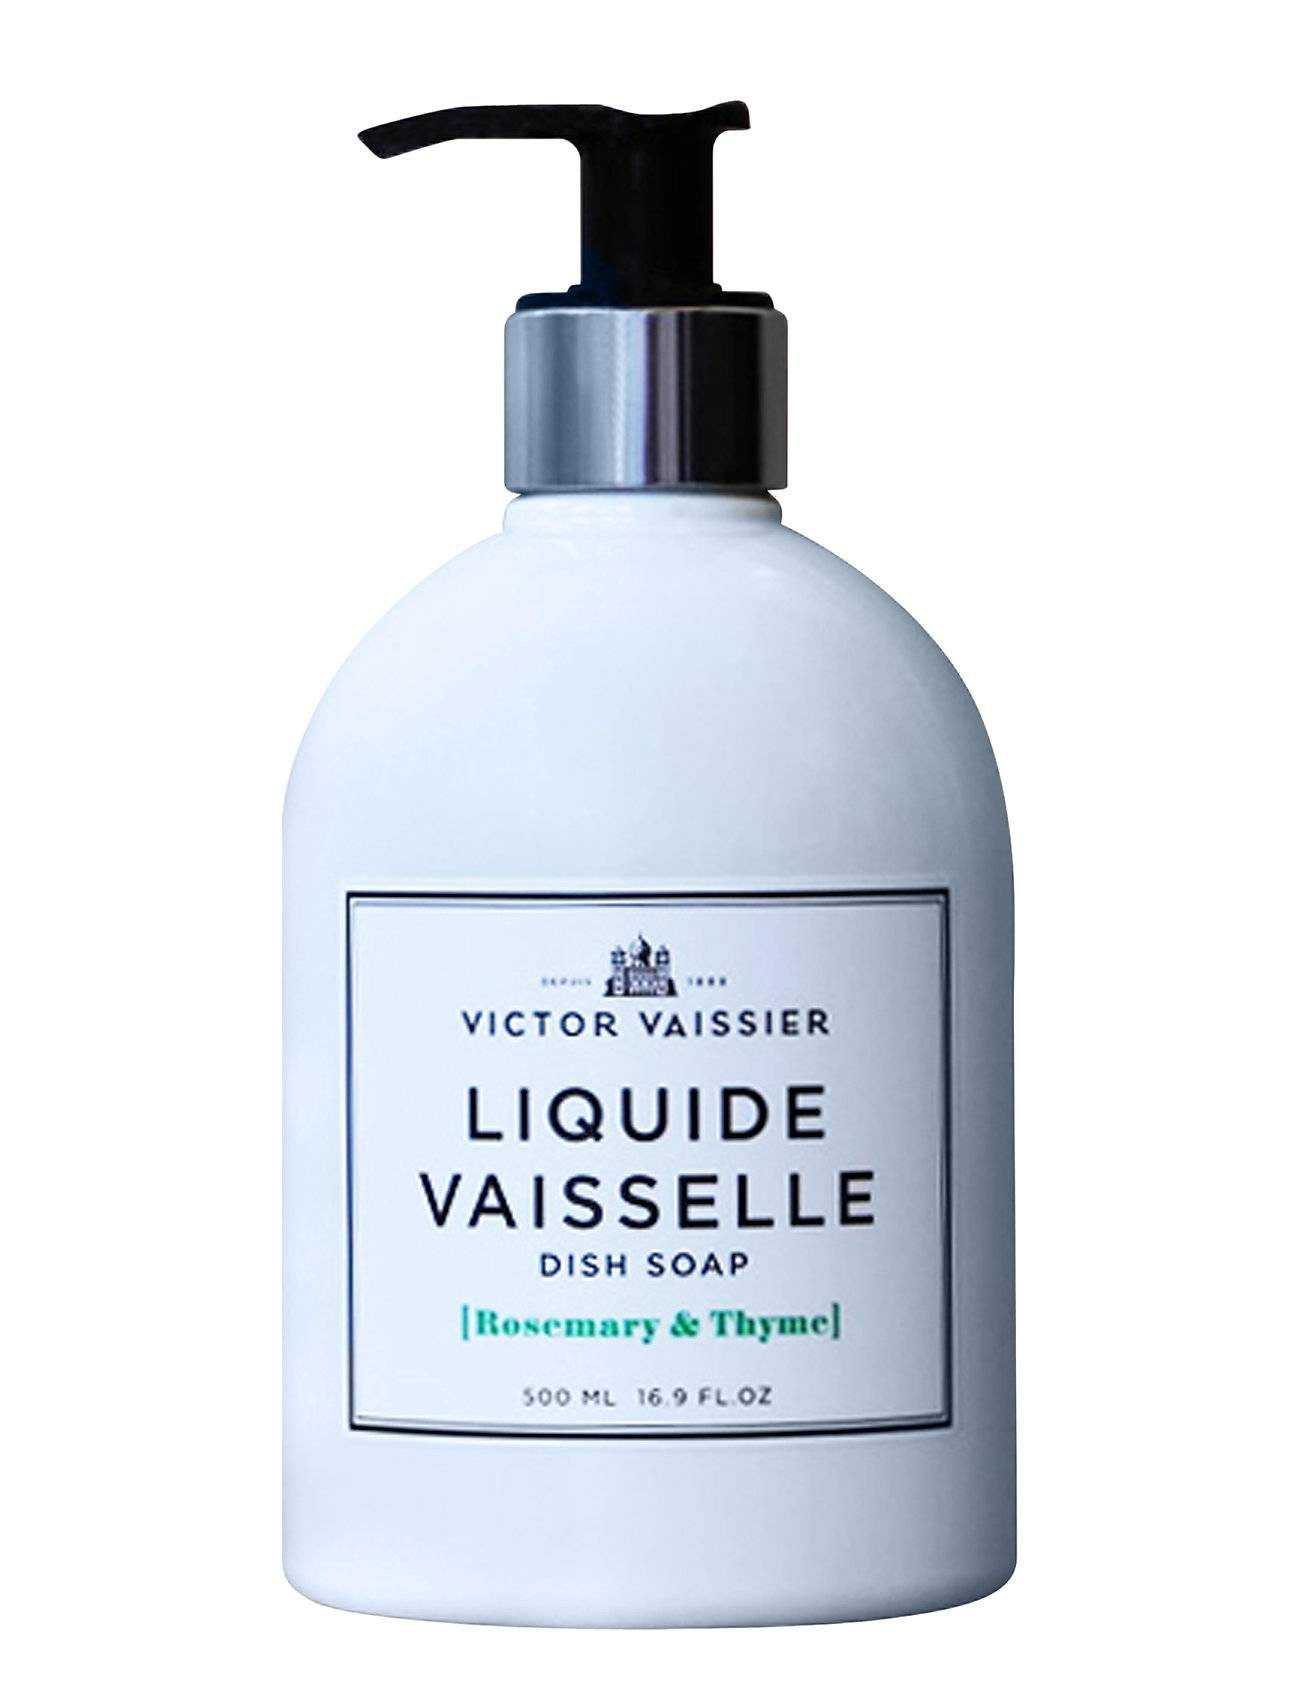 Victor Vaissier Dish Soap Liquide Vaisselle Beauty WOMEN Home Cleaning Products Nude Victor Vaissier